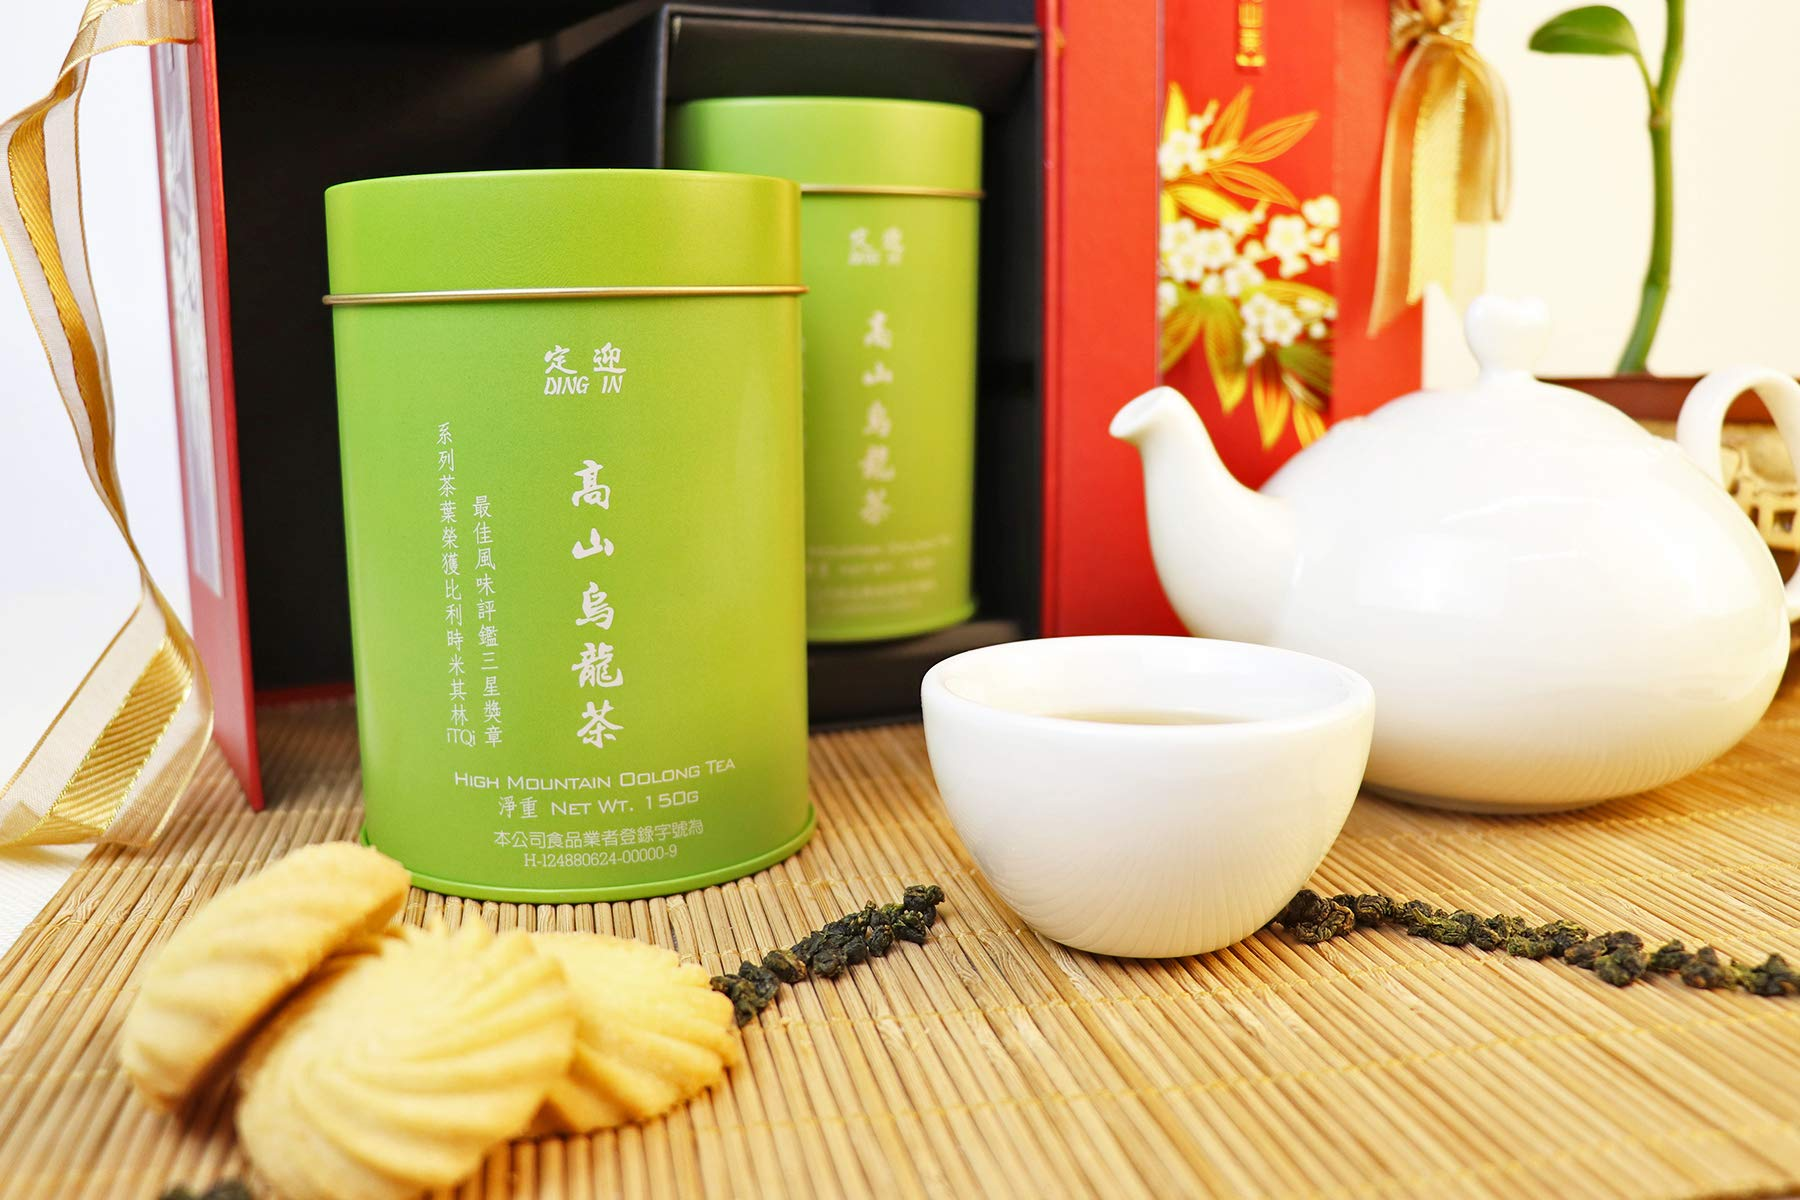 DING IN High-mountain Oolong Tea Feast Straight Gift Box 150g/2cans by Ding In ltd. (Image #4)